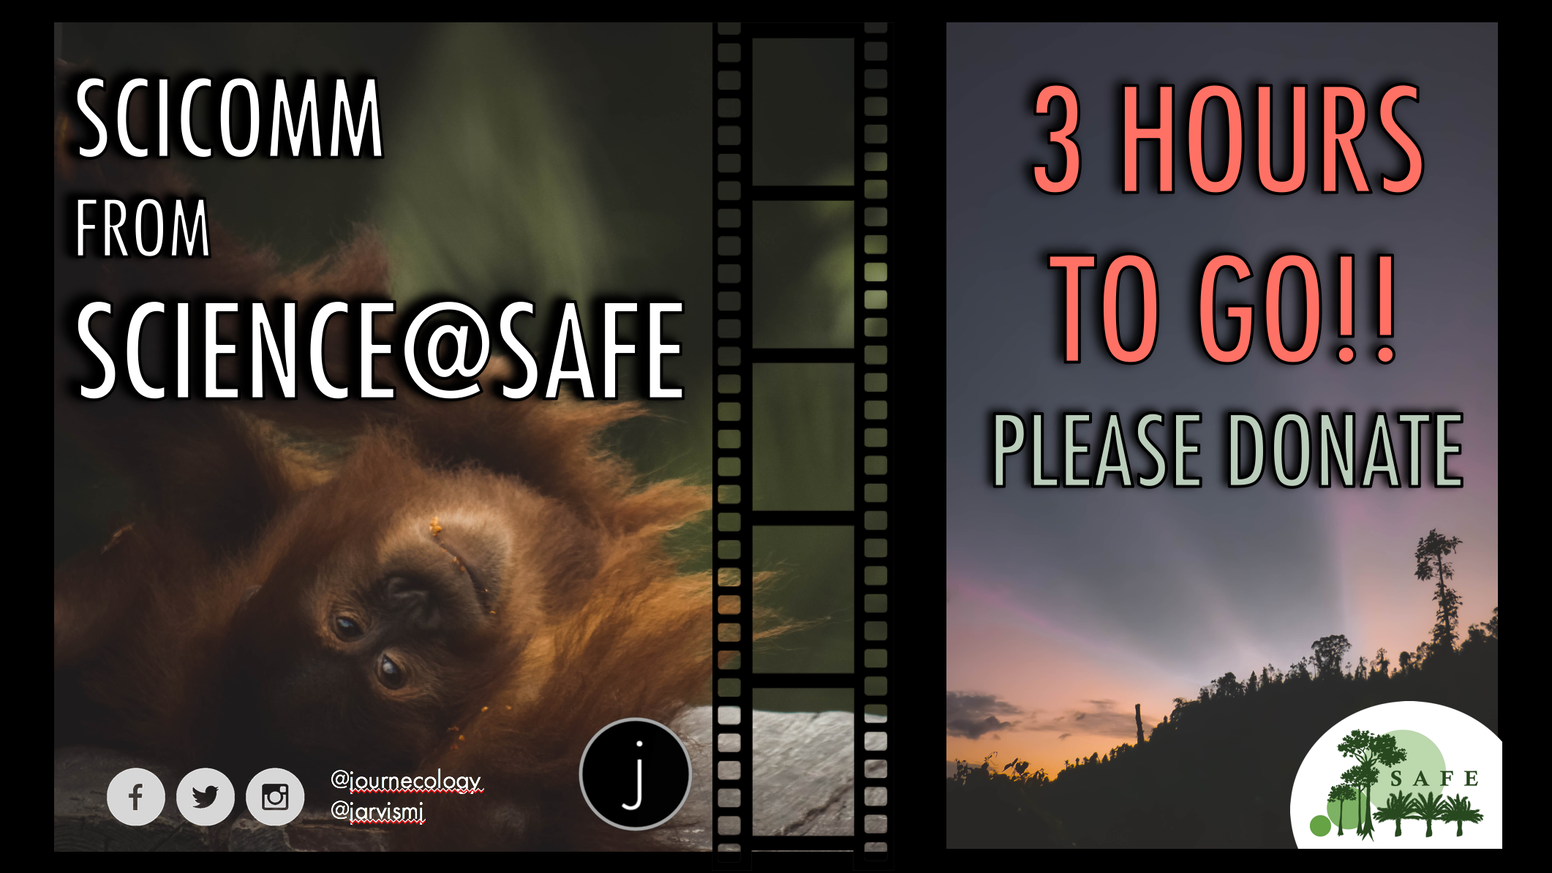 I will be producing a series of interview and presentation videos from the Science@SAFE conference in March.